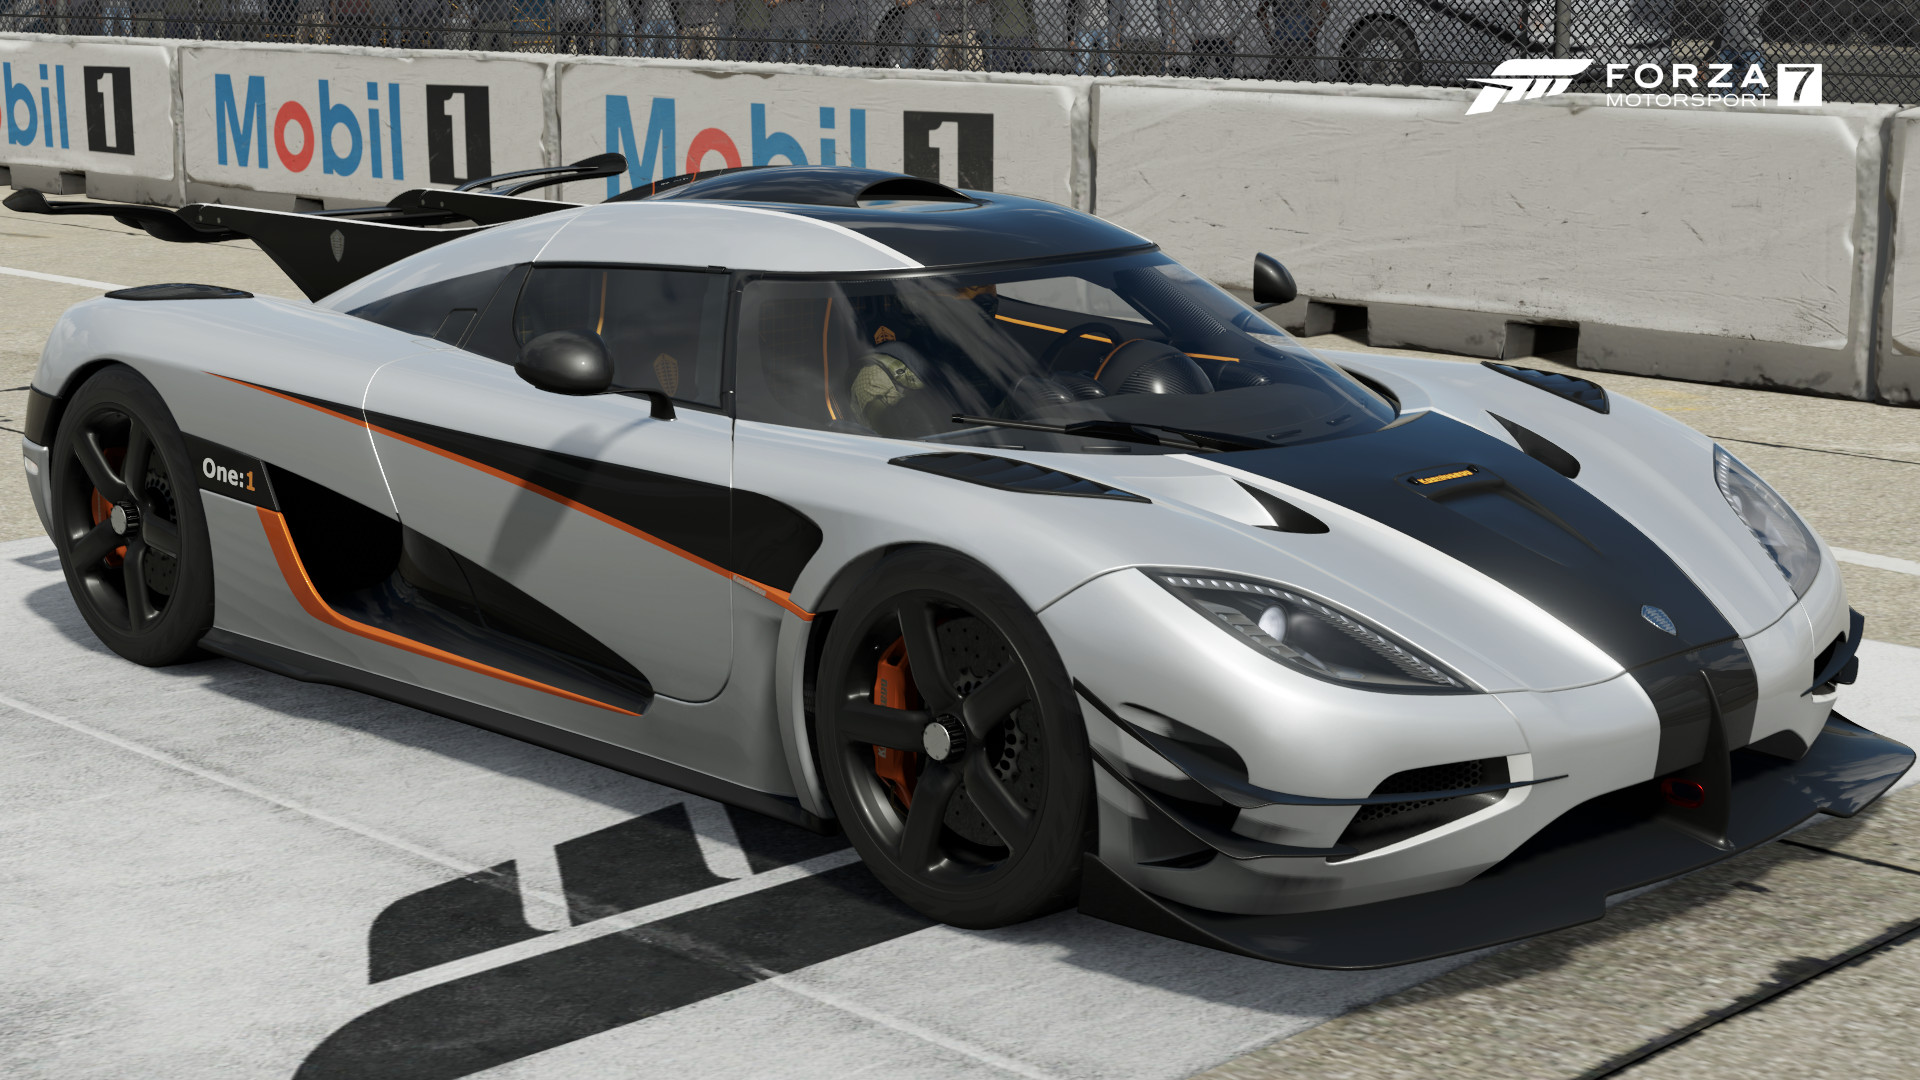 koenigsegg one 1 forza motorsport wiki fandom powered. Black Bedroom Furniture Sets. Home Design Ideas